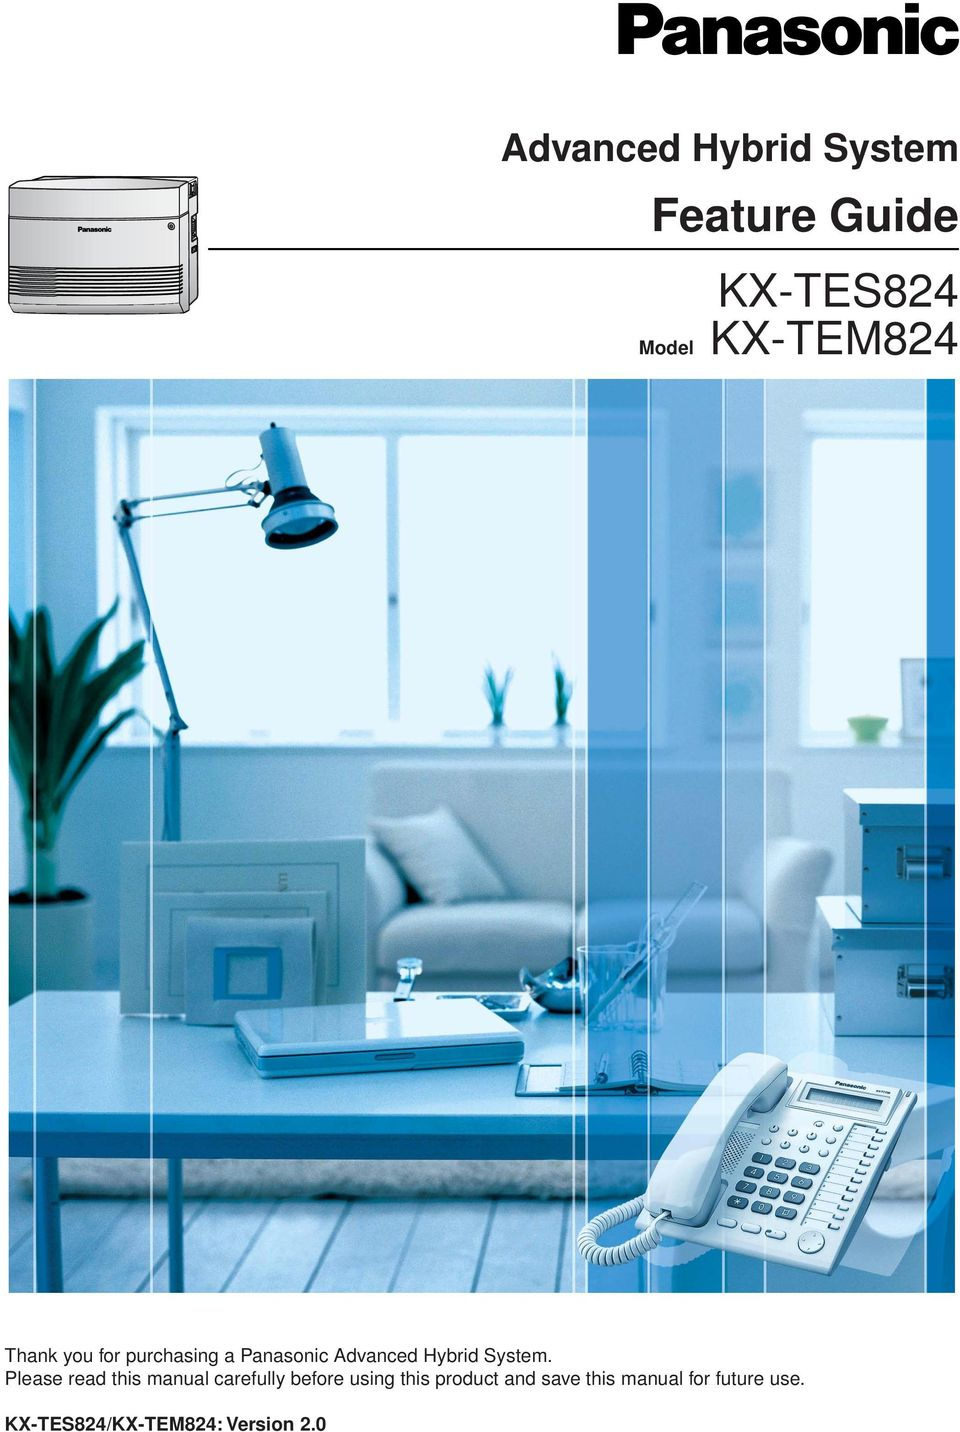 feature guide kx tes824 pdf rh docplayer net panasonic kx-tes824 user manual download panasonic kx-tes824 features manual